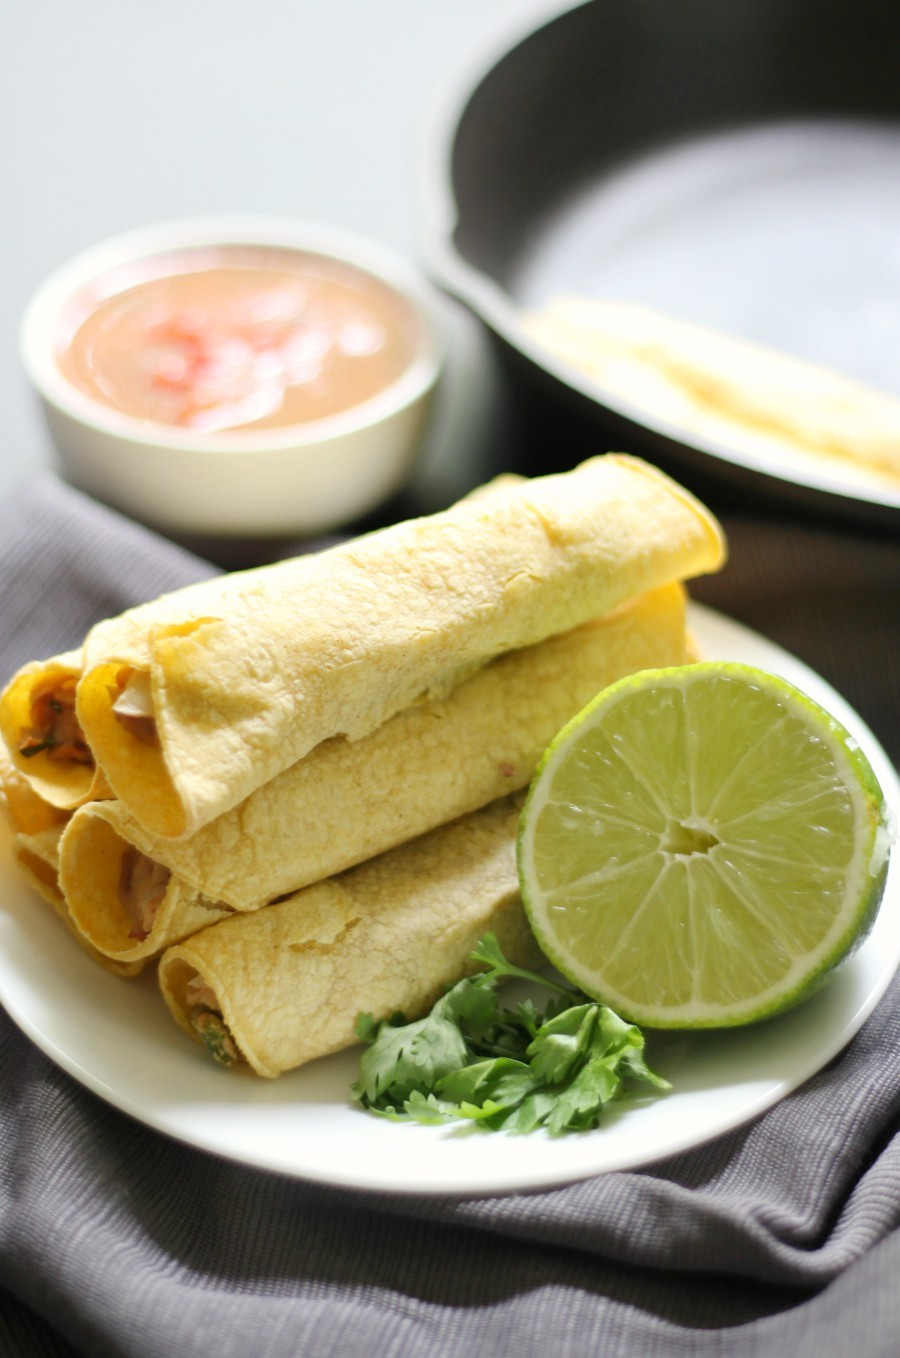 "Gluten-Free Baked Pinto Bean Taquitos (Vegan, Allergy-Free) | Strength and Sunshine @RebeccaGF666 Change up your taco routine with the Mexican ""rolled taco""! Gluten-Free Baked Pinto Bean Taquitos that are vegan, top 8 allergy-free, require no oil, and perfect as a dinner recipe or fun appetizer bite to feed a crowd! A spicy pinto bean filling, simply rolled in corn tortillas! #taquitos #glutenfree #vegan #mexicanfood #strengthandsunshine"